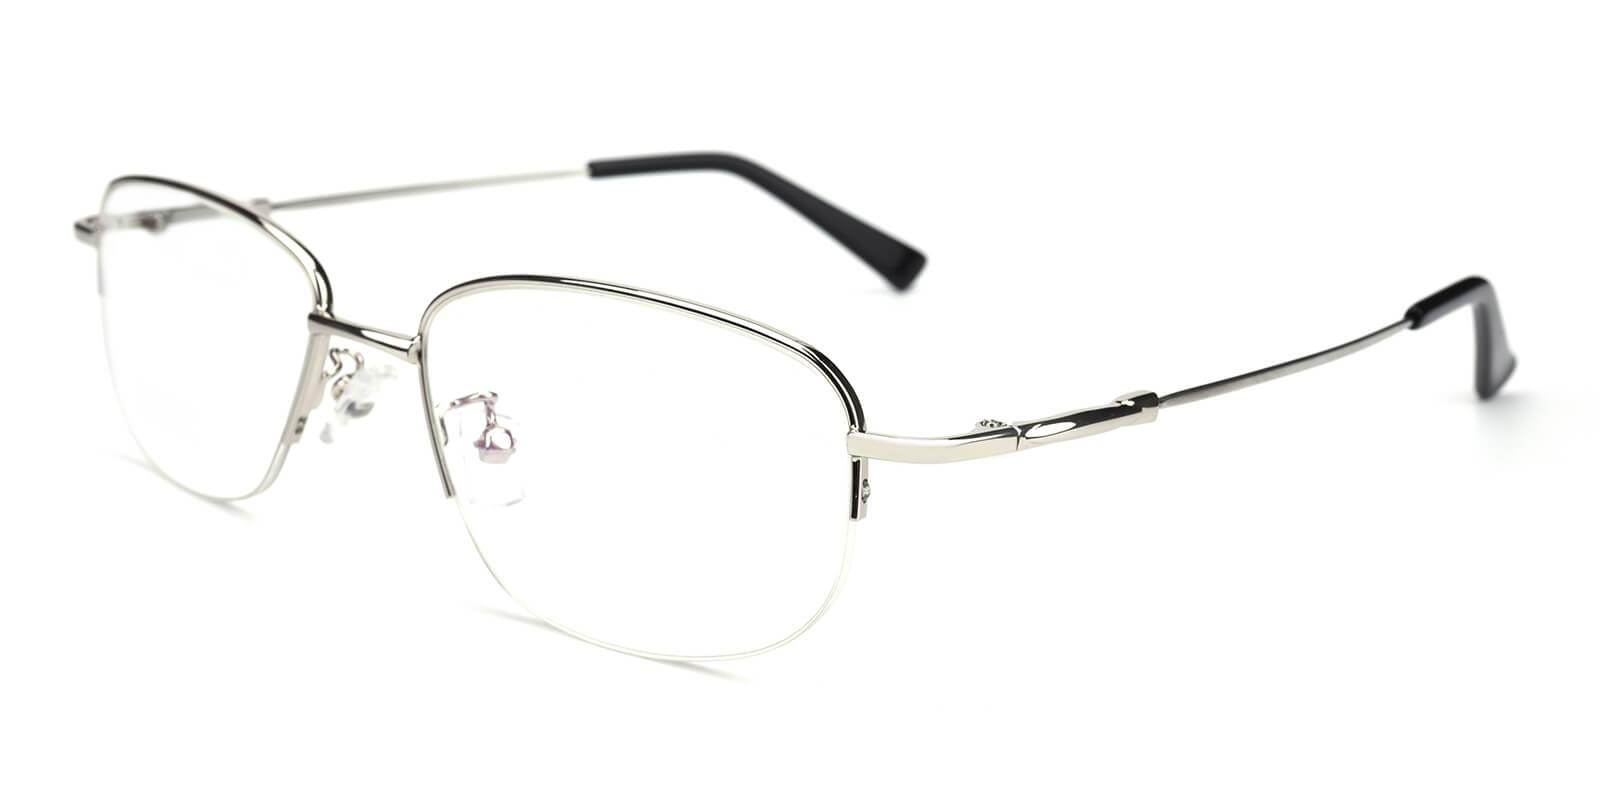 Recial-Silver-Square-Metal-Eyeglasses-additional1